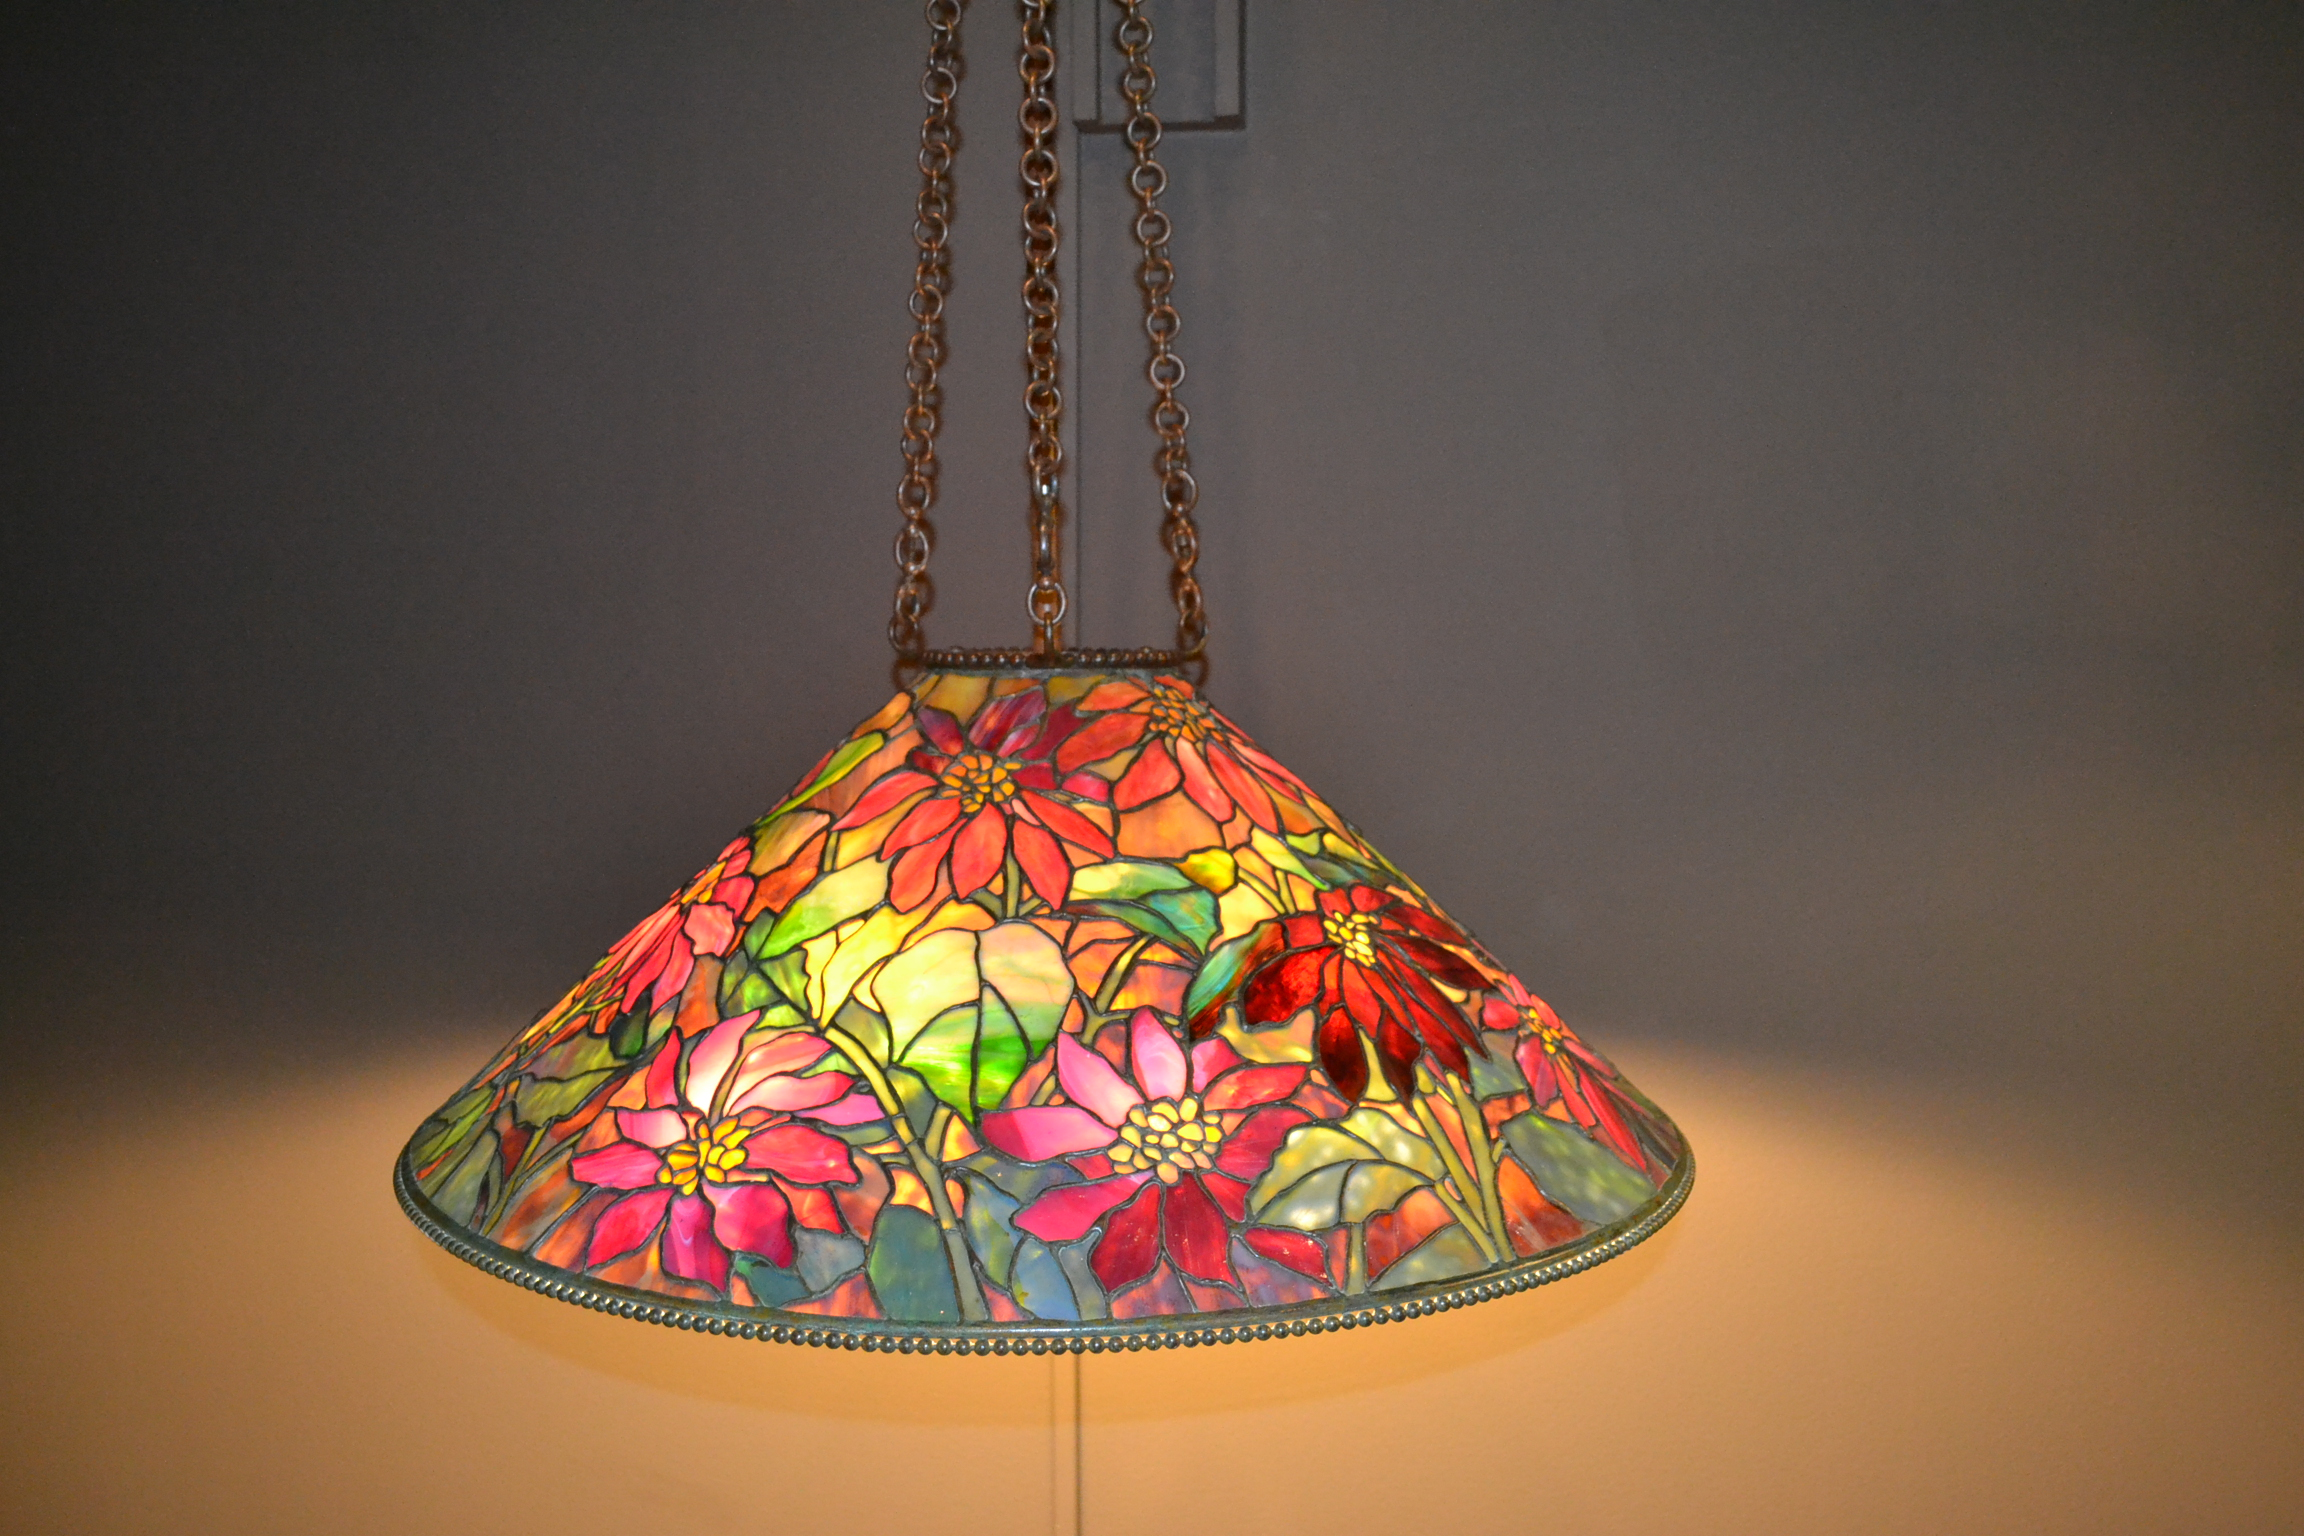 tiffany hanging lamps canada cordless table lamps with shade cool design ideas for lamp 1. Black Bedroom Furniture Sets. Home Design Ideas